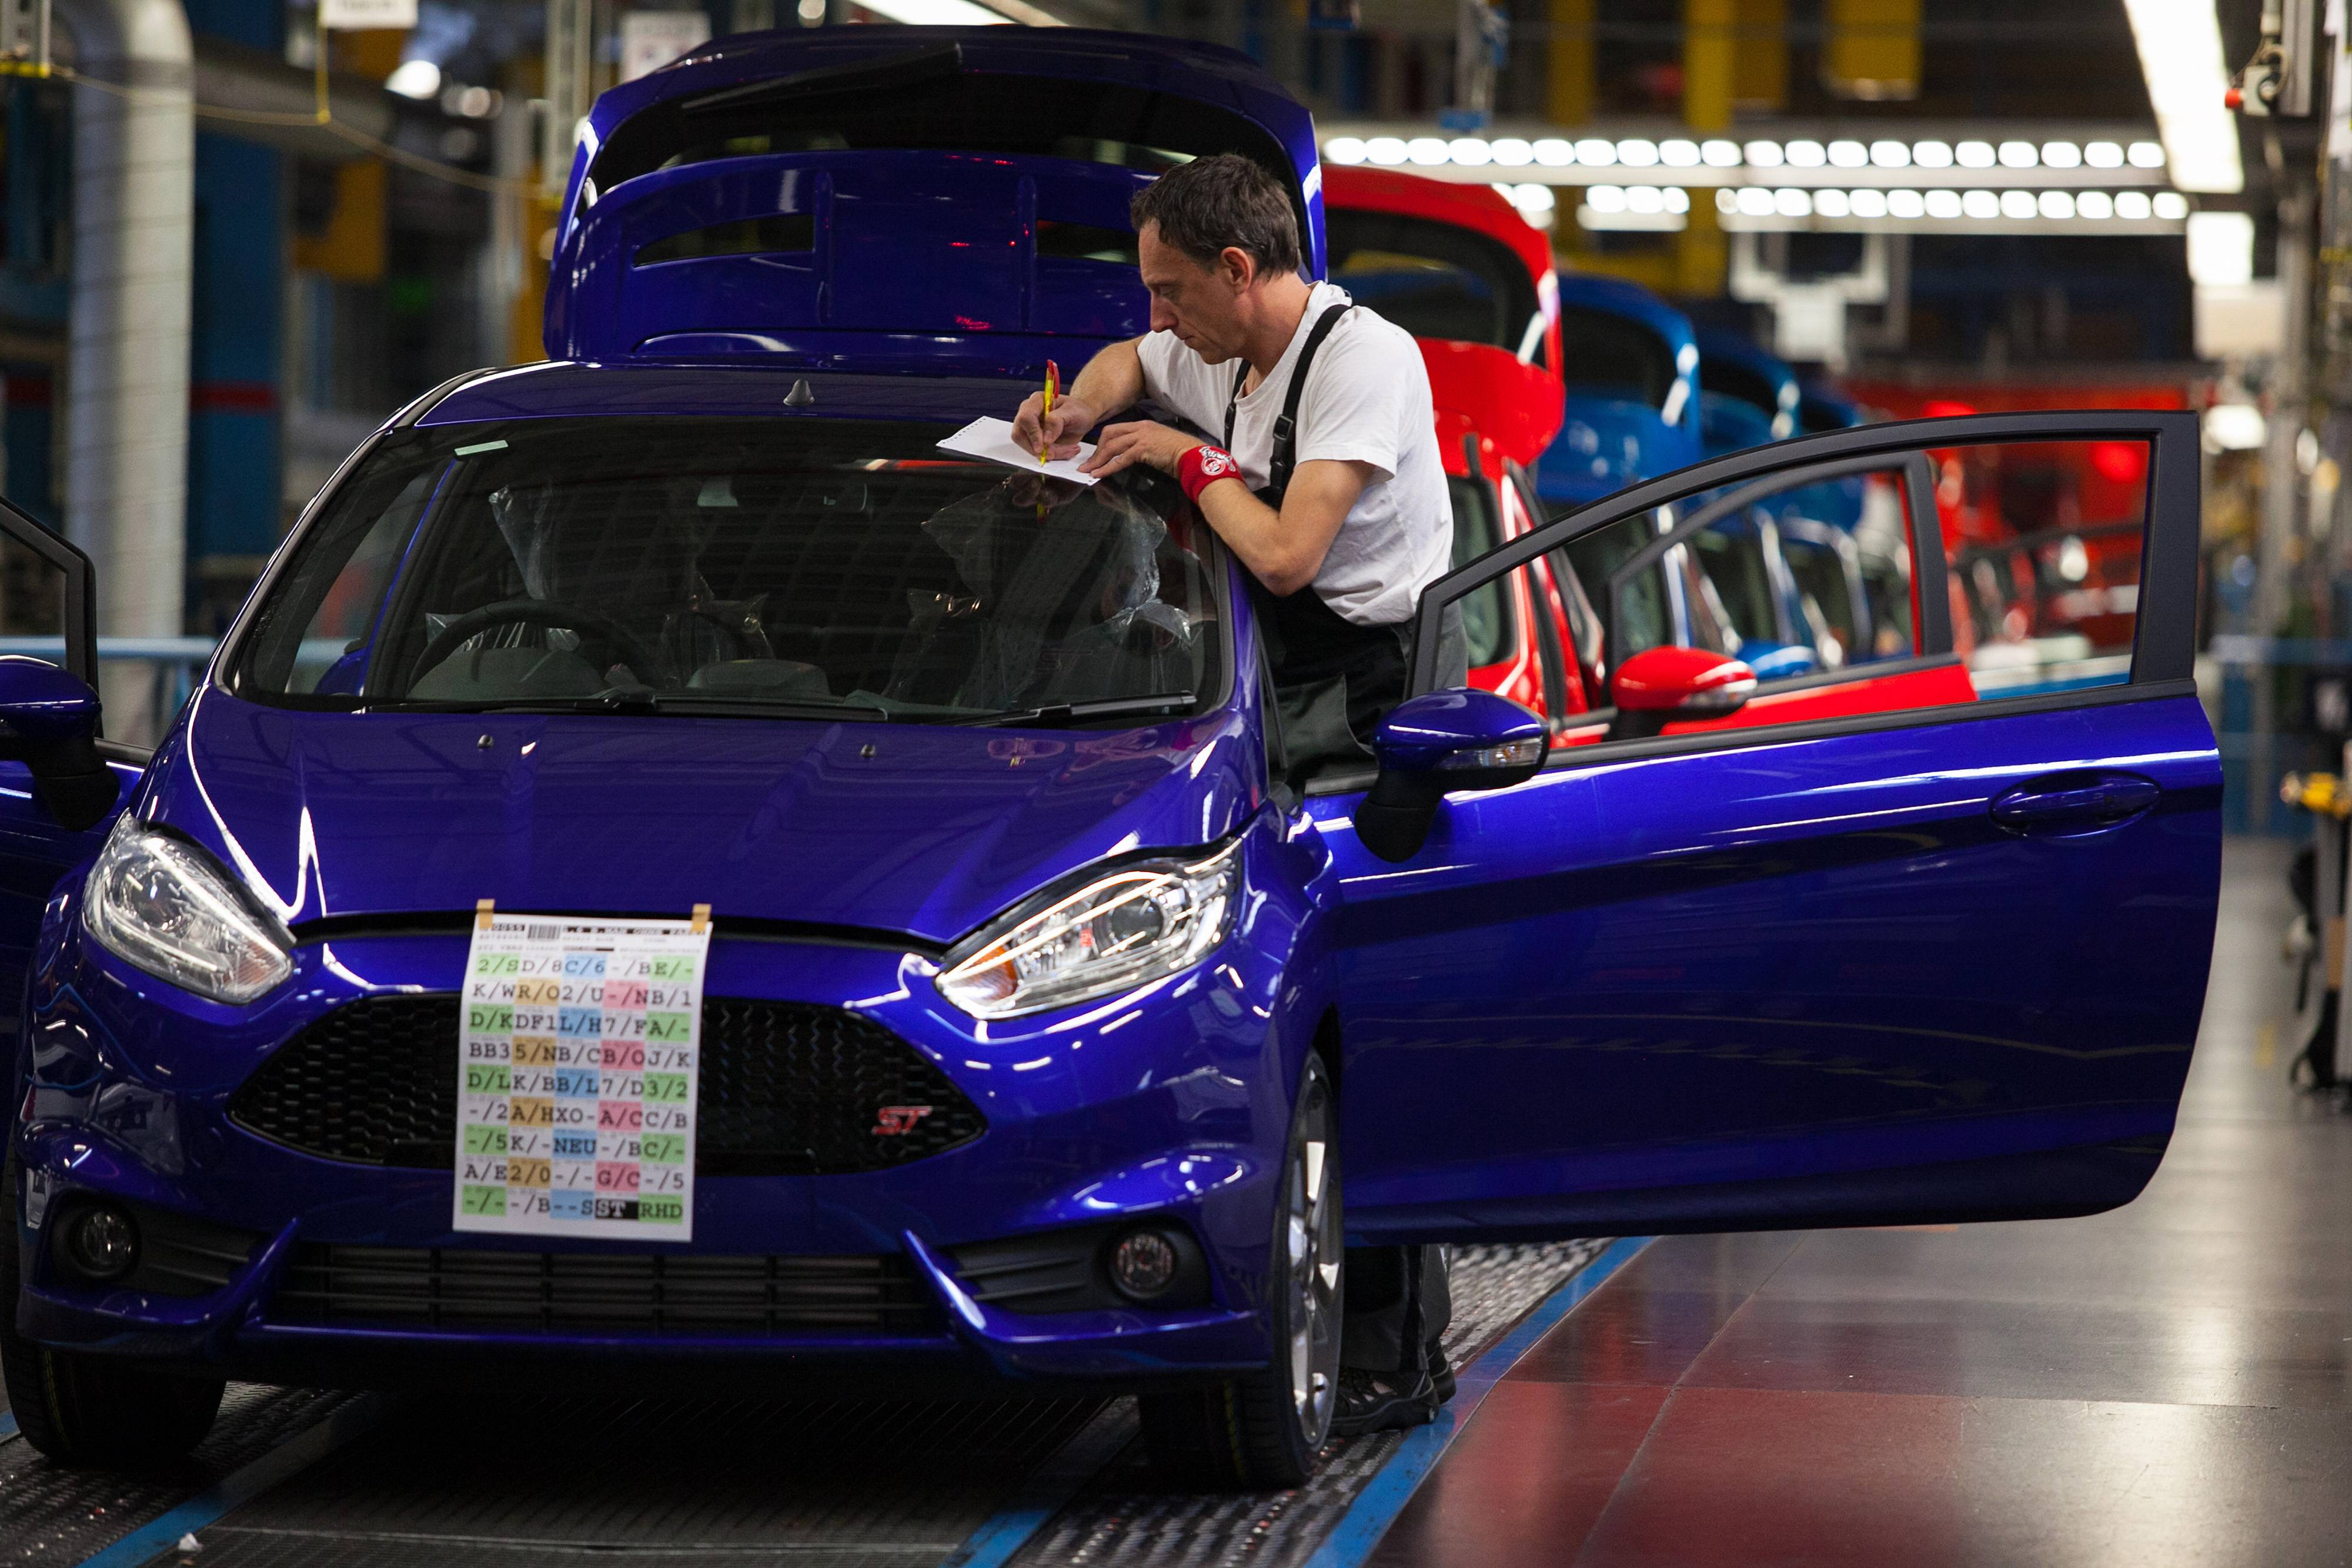 Ford Motor is building four plants in China and two in India. By 2020, the automaker hopes Asia Pacific and the Middle East will account for one-third of its sales.